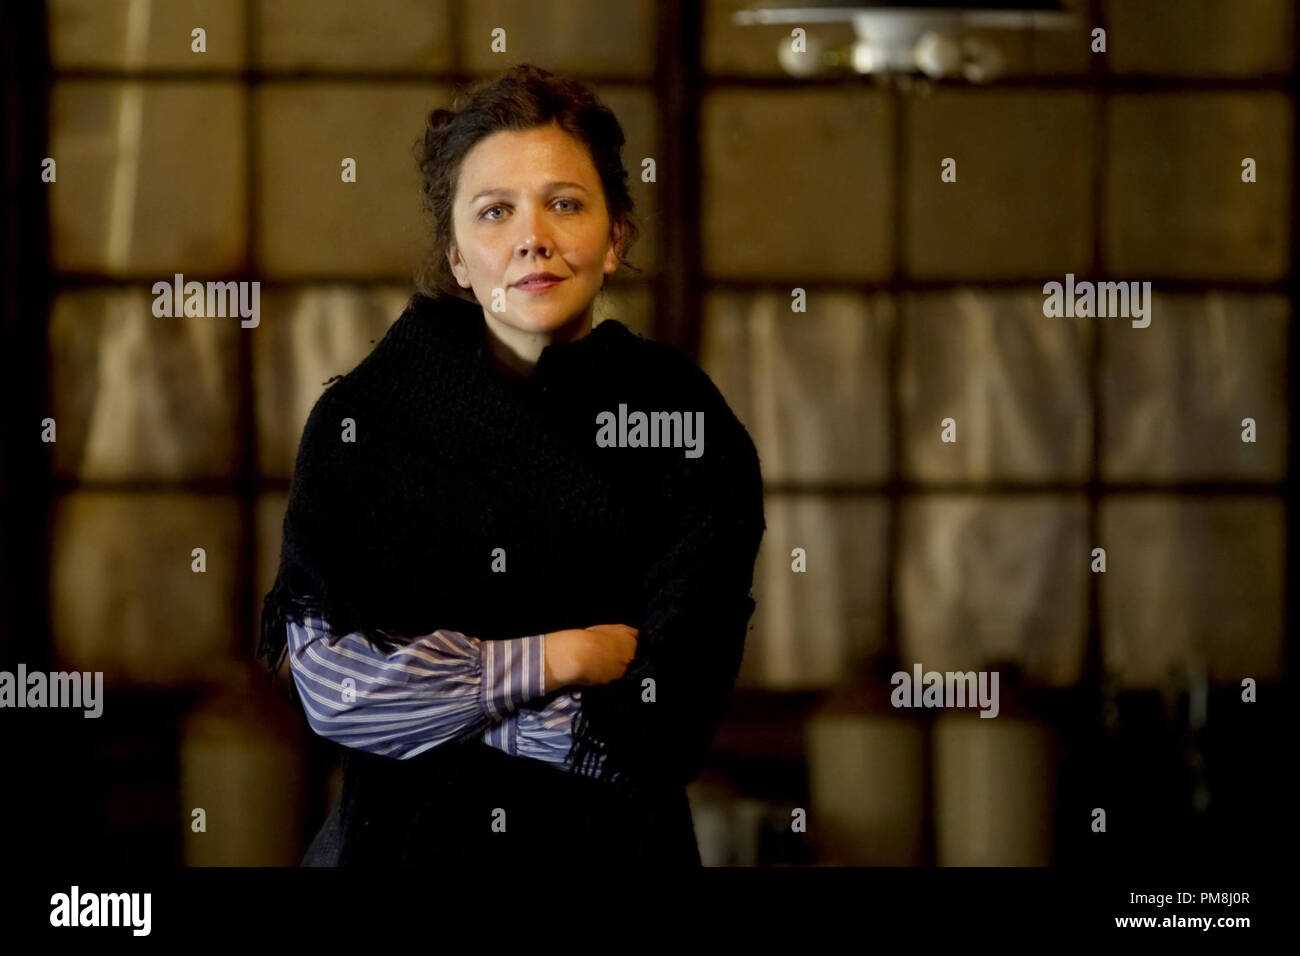 Maggie Gyllenhaal stars as Charlotte Dalrymple in Sony Pictures Classics' Hysteria (2012). Photo credit by Ricardo Vaz Palma. - Stock Image